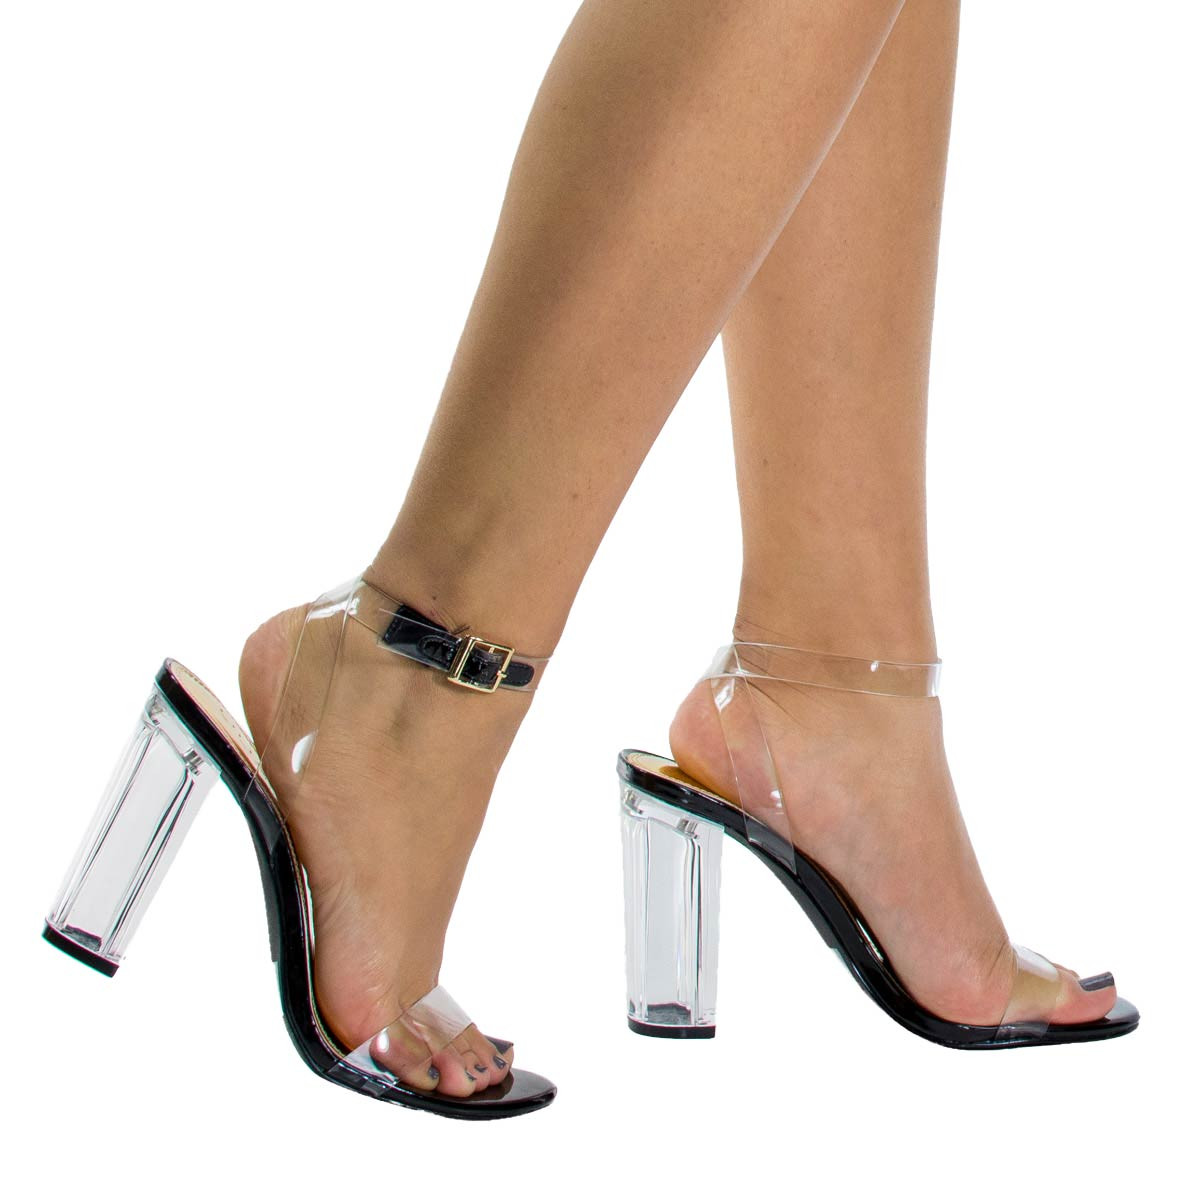 Fiesta1 by Liliana, Clear See Through Dress Sandal w Lucite Perspex Acrylic High Heel